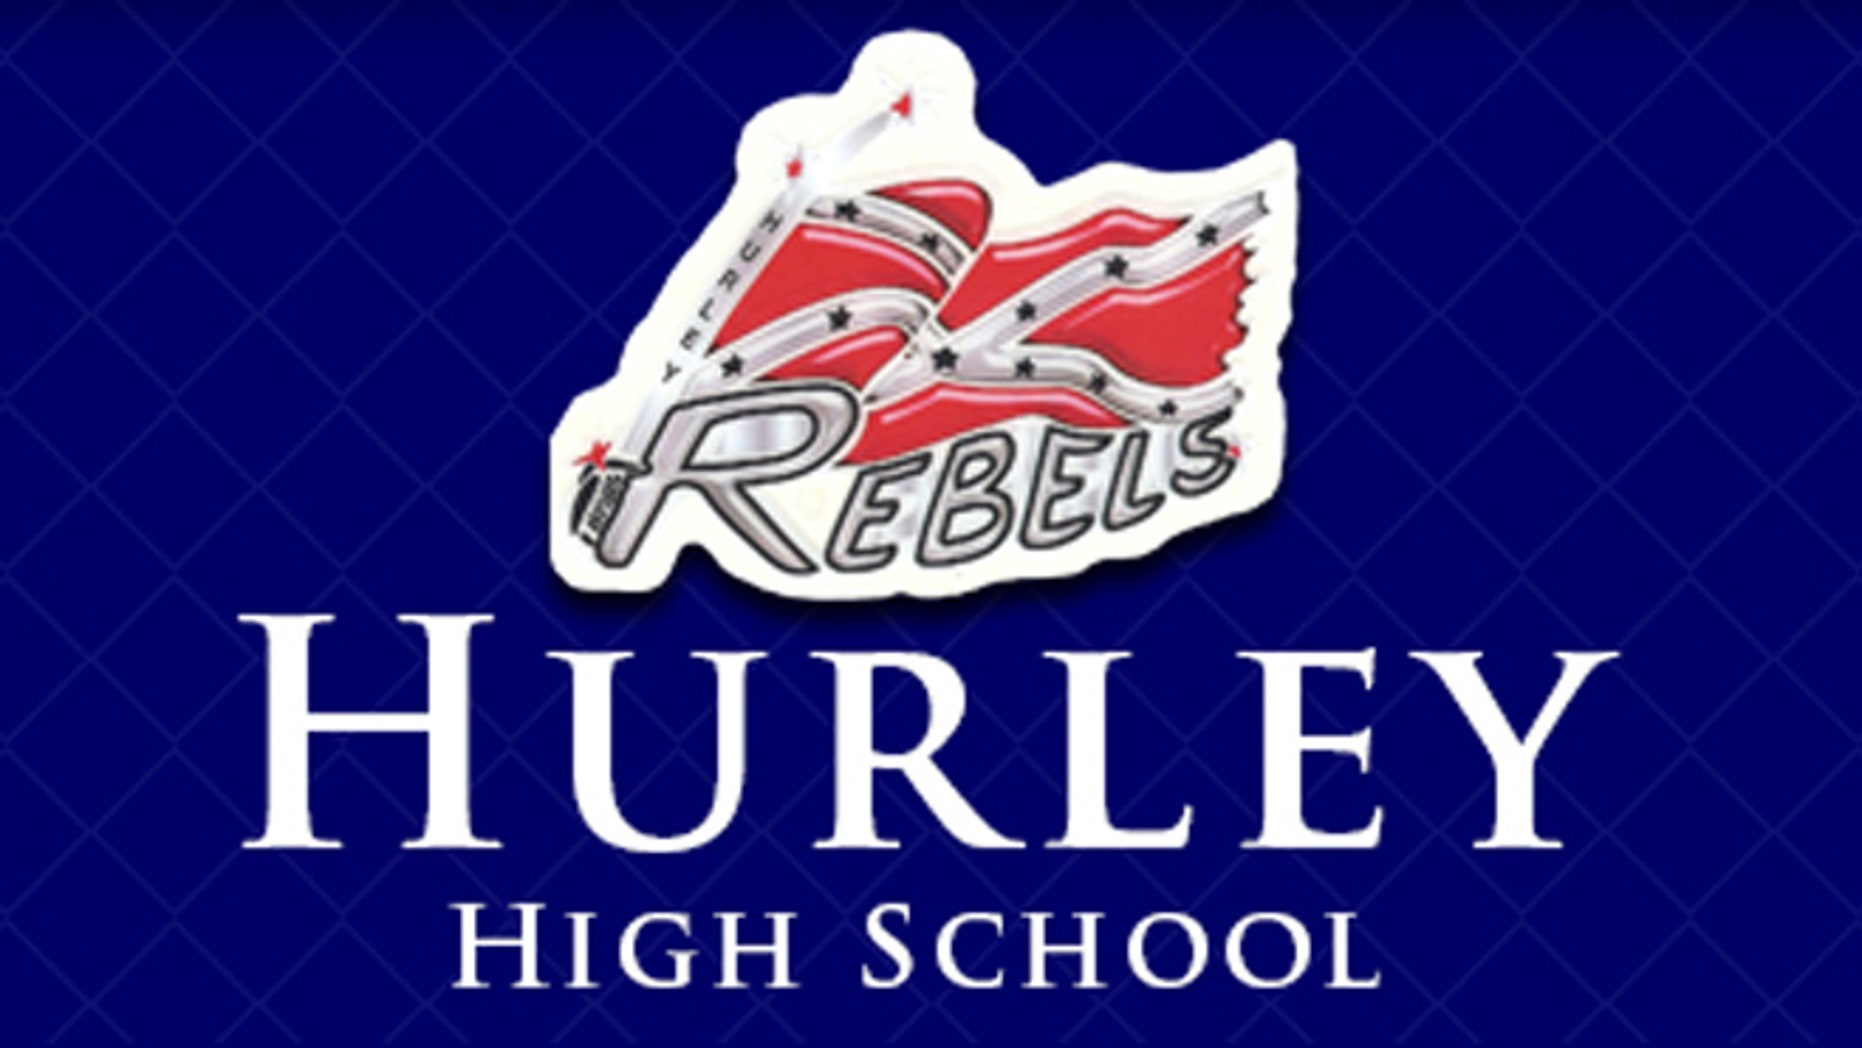 Hurley High School uses the Confederate battle flag to represent its athletic squads, The Rebels.